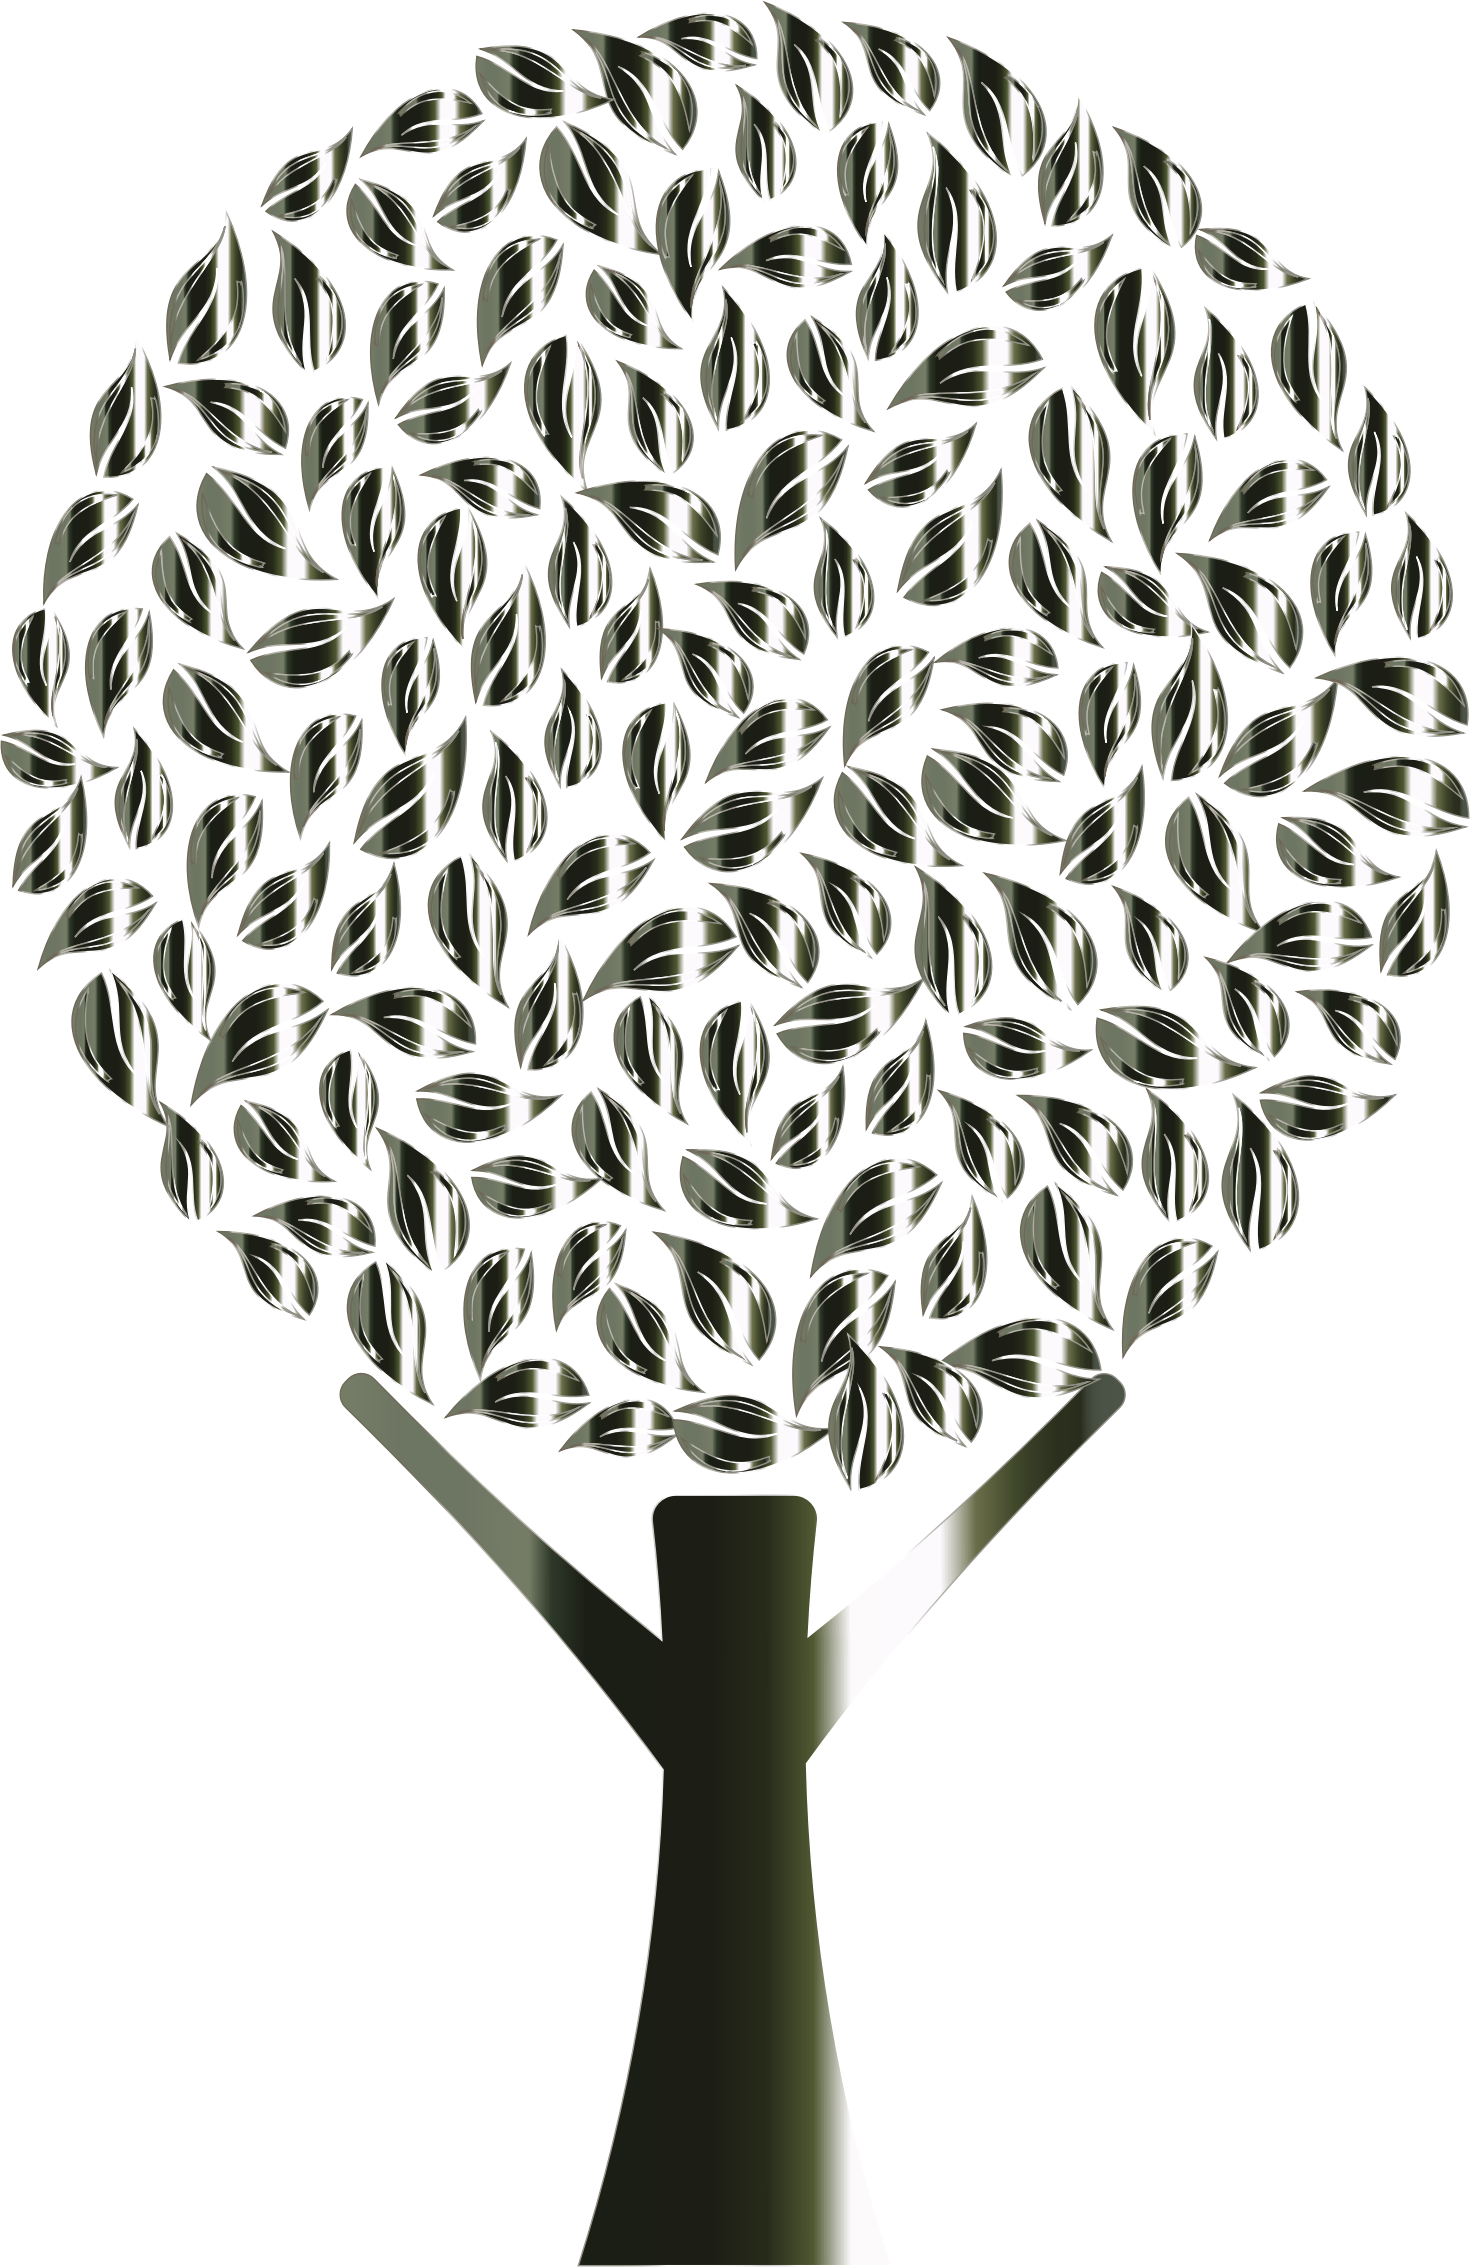 Polished Obsidian Abstract Tree No Background by GDJ